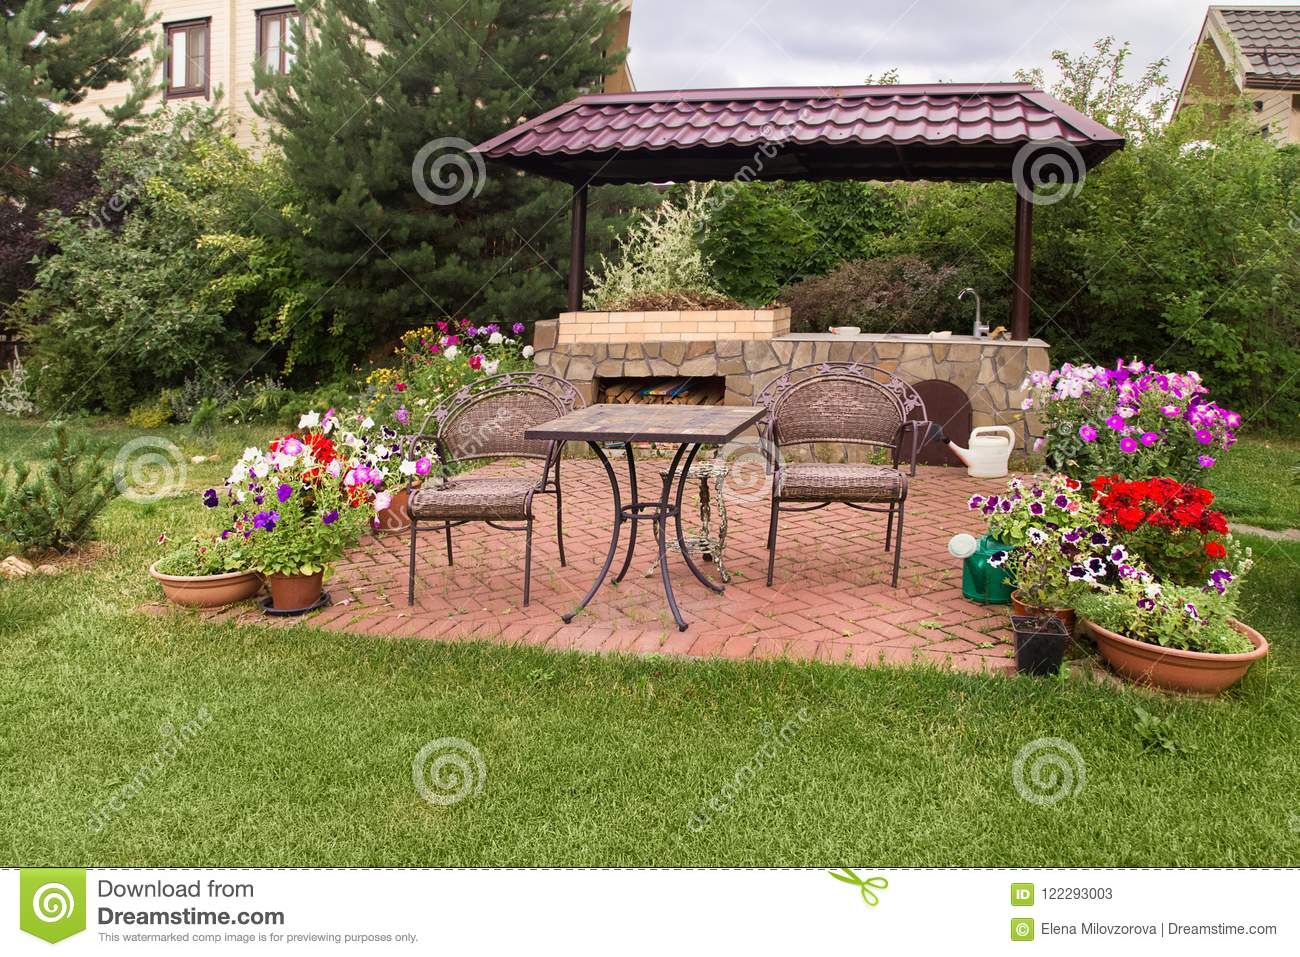 https www dreamstime com backyard patio area stone fireplace furniture green party barbecue blooming flowers image122293003